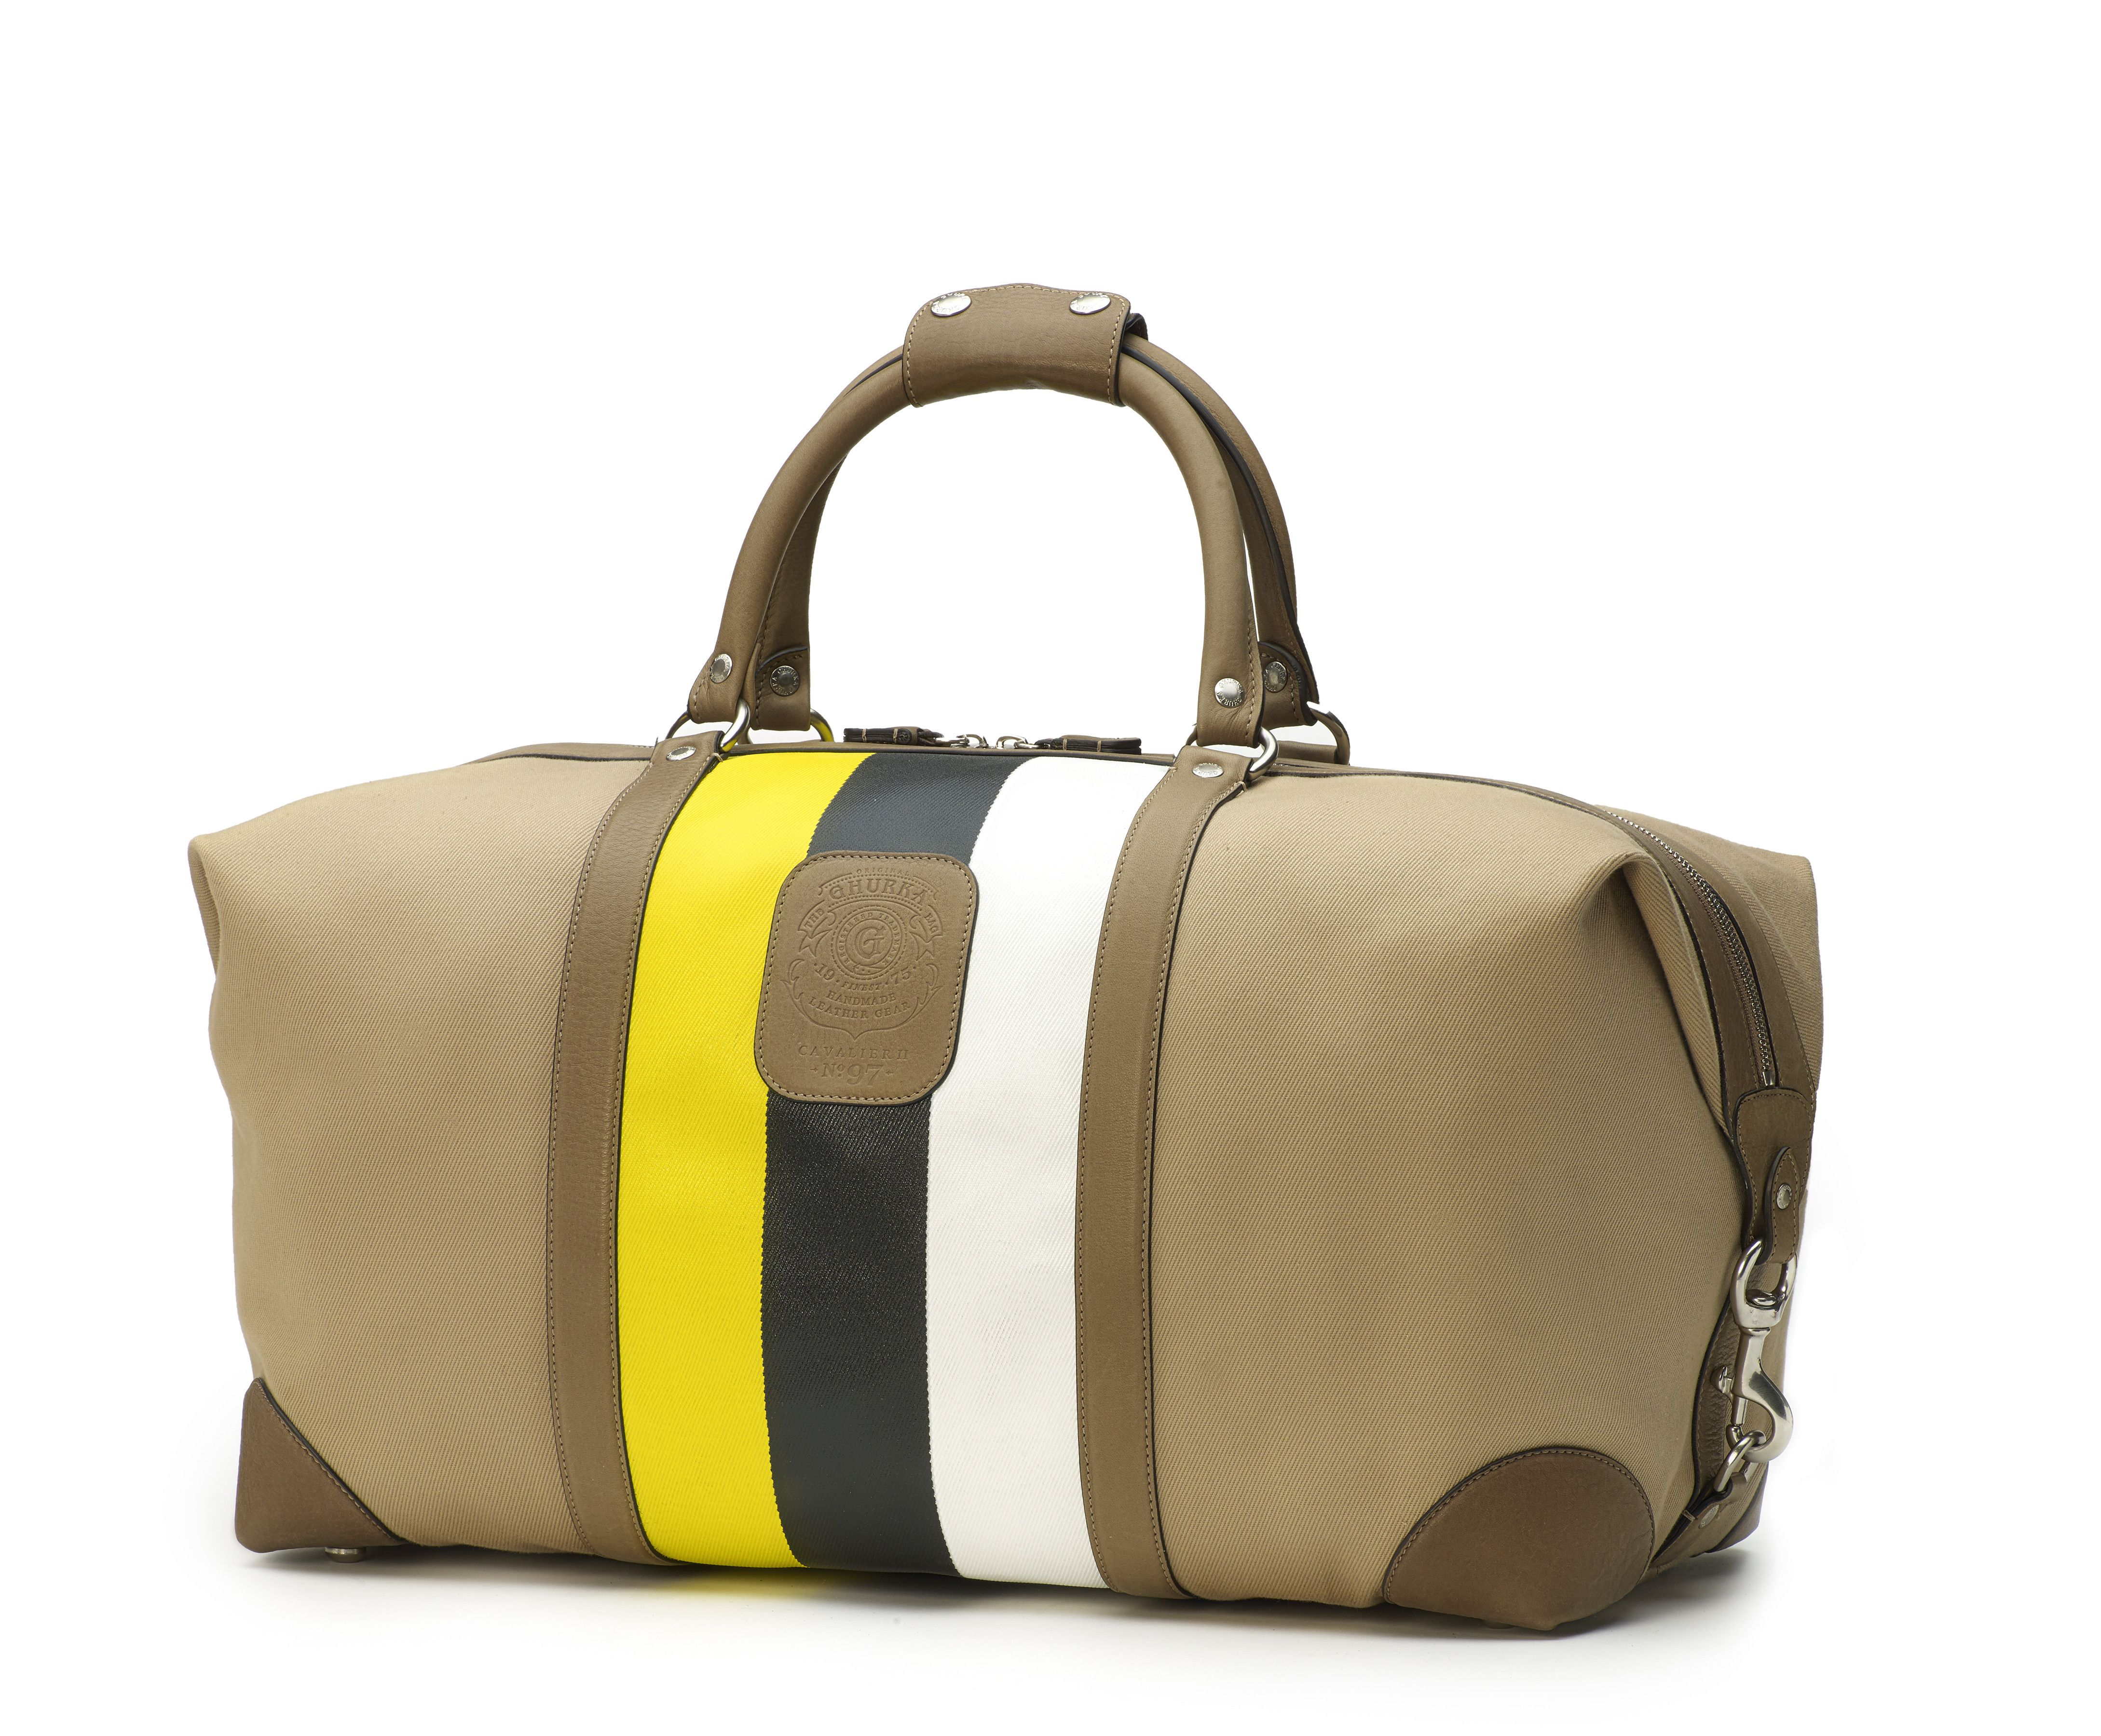 Ghurka offers the best duffel bags for the travelers we all aspire to be: adventurous, elegant, innovative. Our versatile mid-size duffel bag features fold-end design that opens to allow extra room and ease of packing. The perfect weekend carry-on bag, the Cavalier II No. 97 comes in rich chestnut leather, with our signature checked fabric lining and brass hardware. This designer duffel bag is functional, sophisticated, and classic.